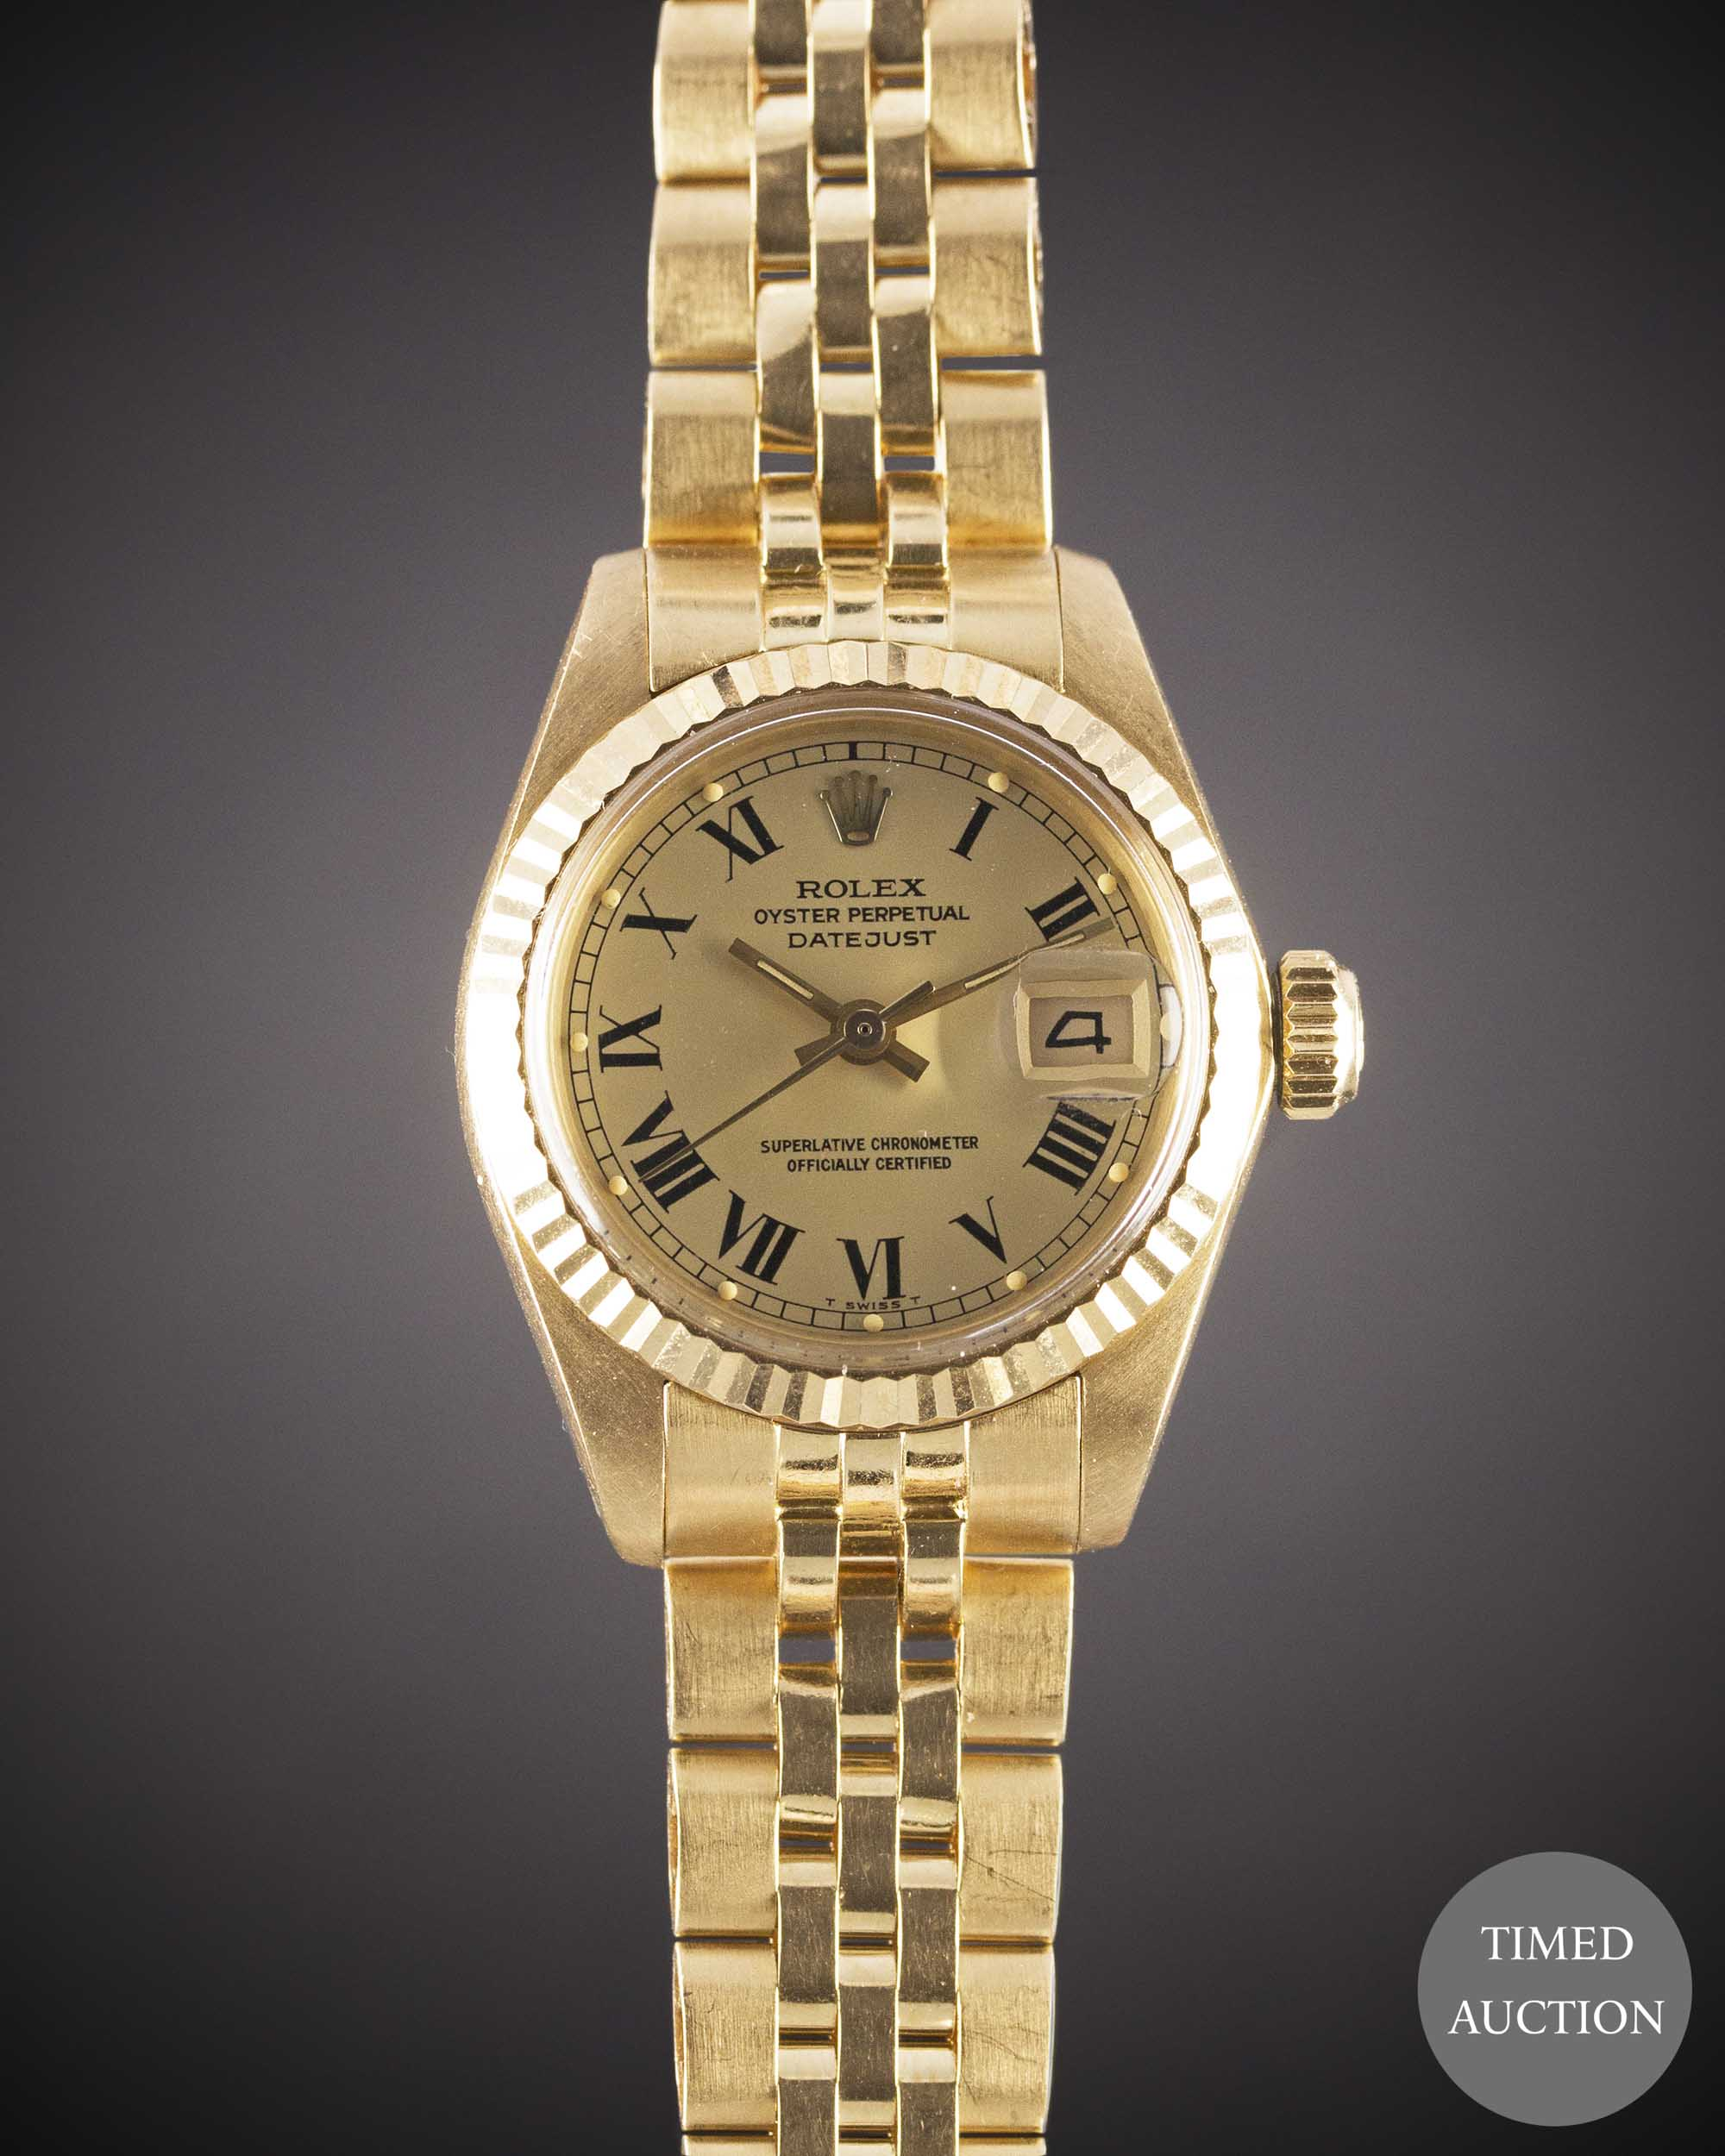 Lot 26 - A LADIES 18K SOLID GOLD ROLEX OYSTER PERPETUAL DATEJUST BRACELET WATCH DATED 1979, REF. 6917 WITH